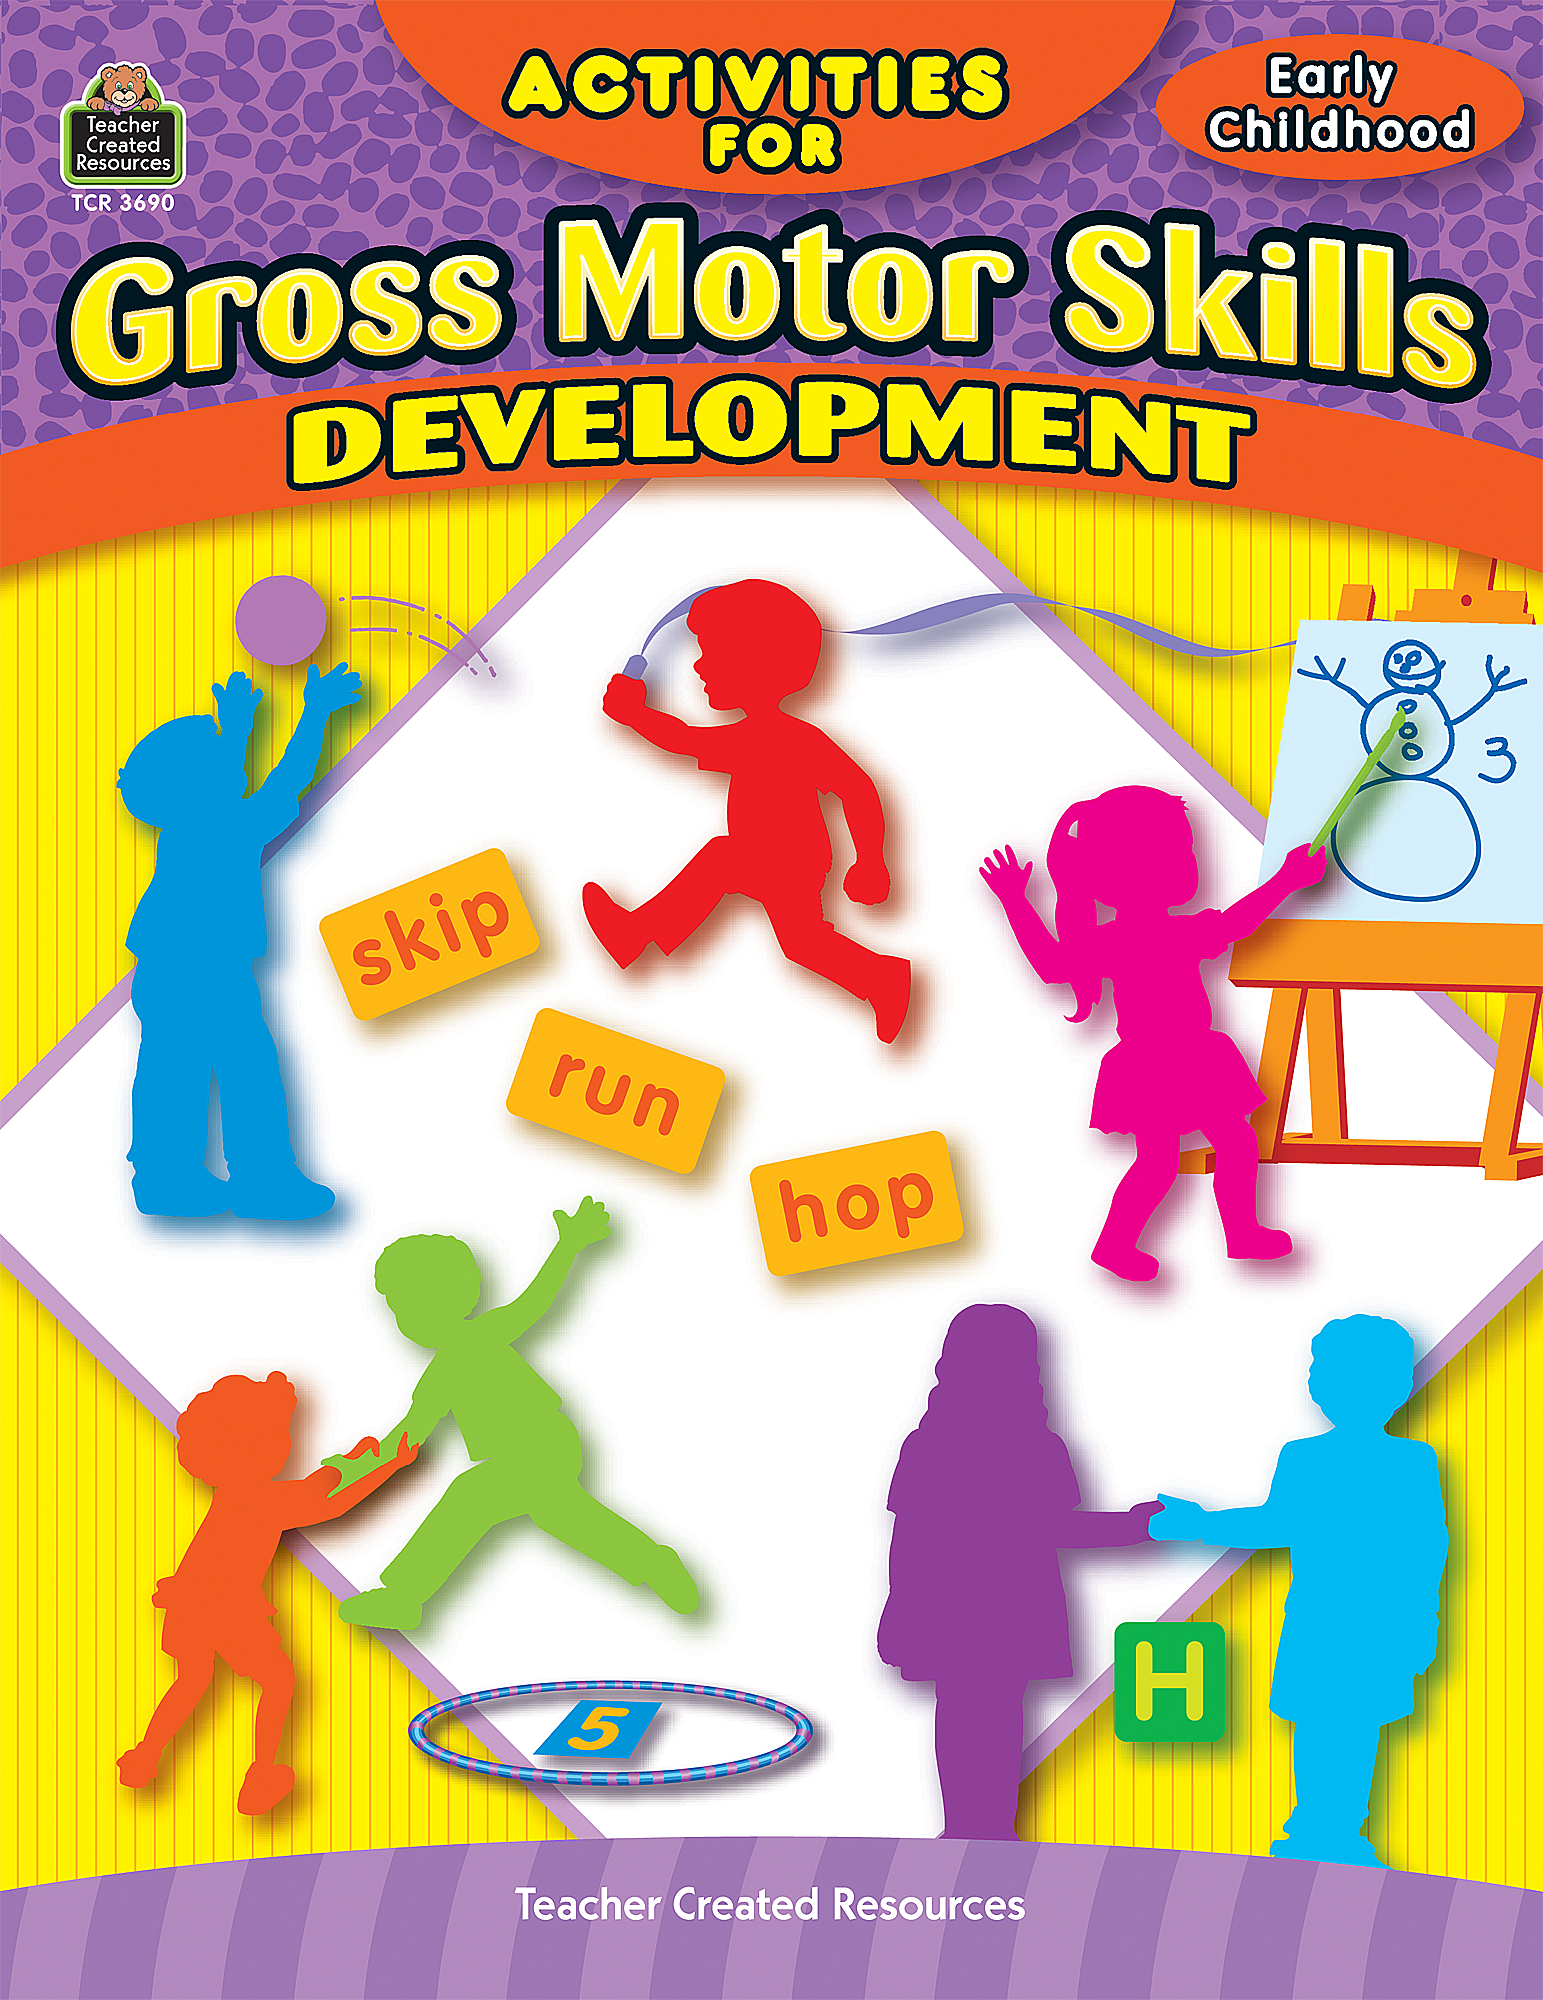 developing gross motor skills in preschoolers activities for gross motor skills developmen tcr3690 513